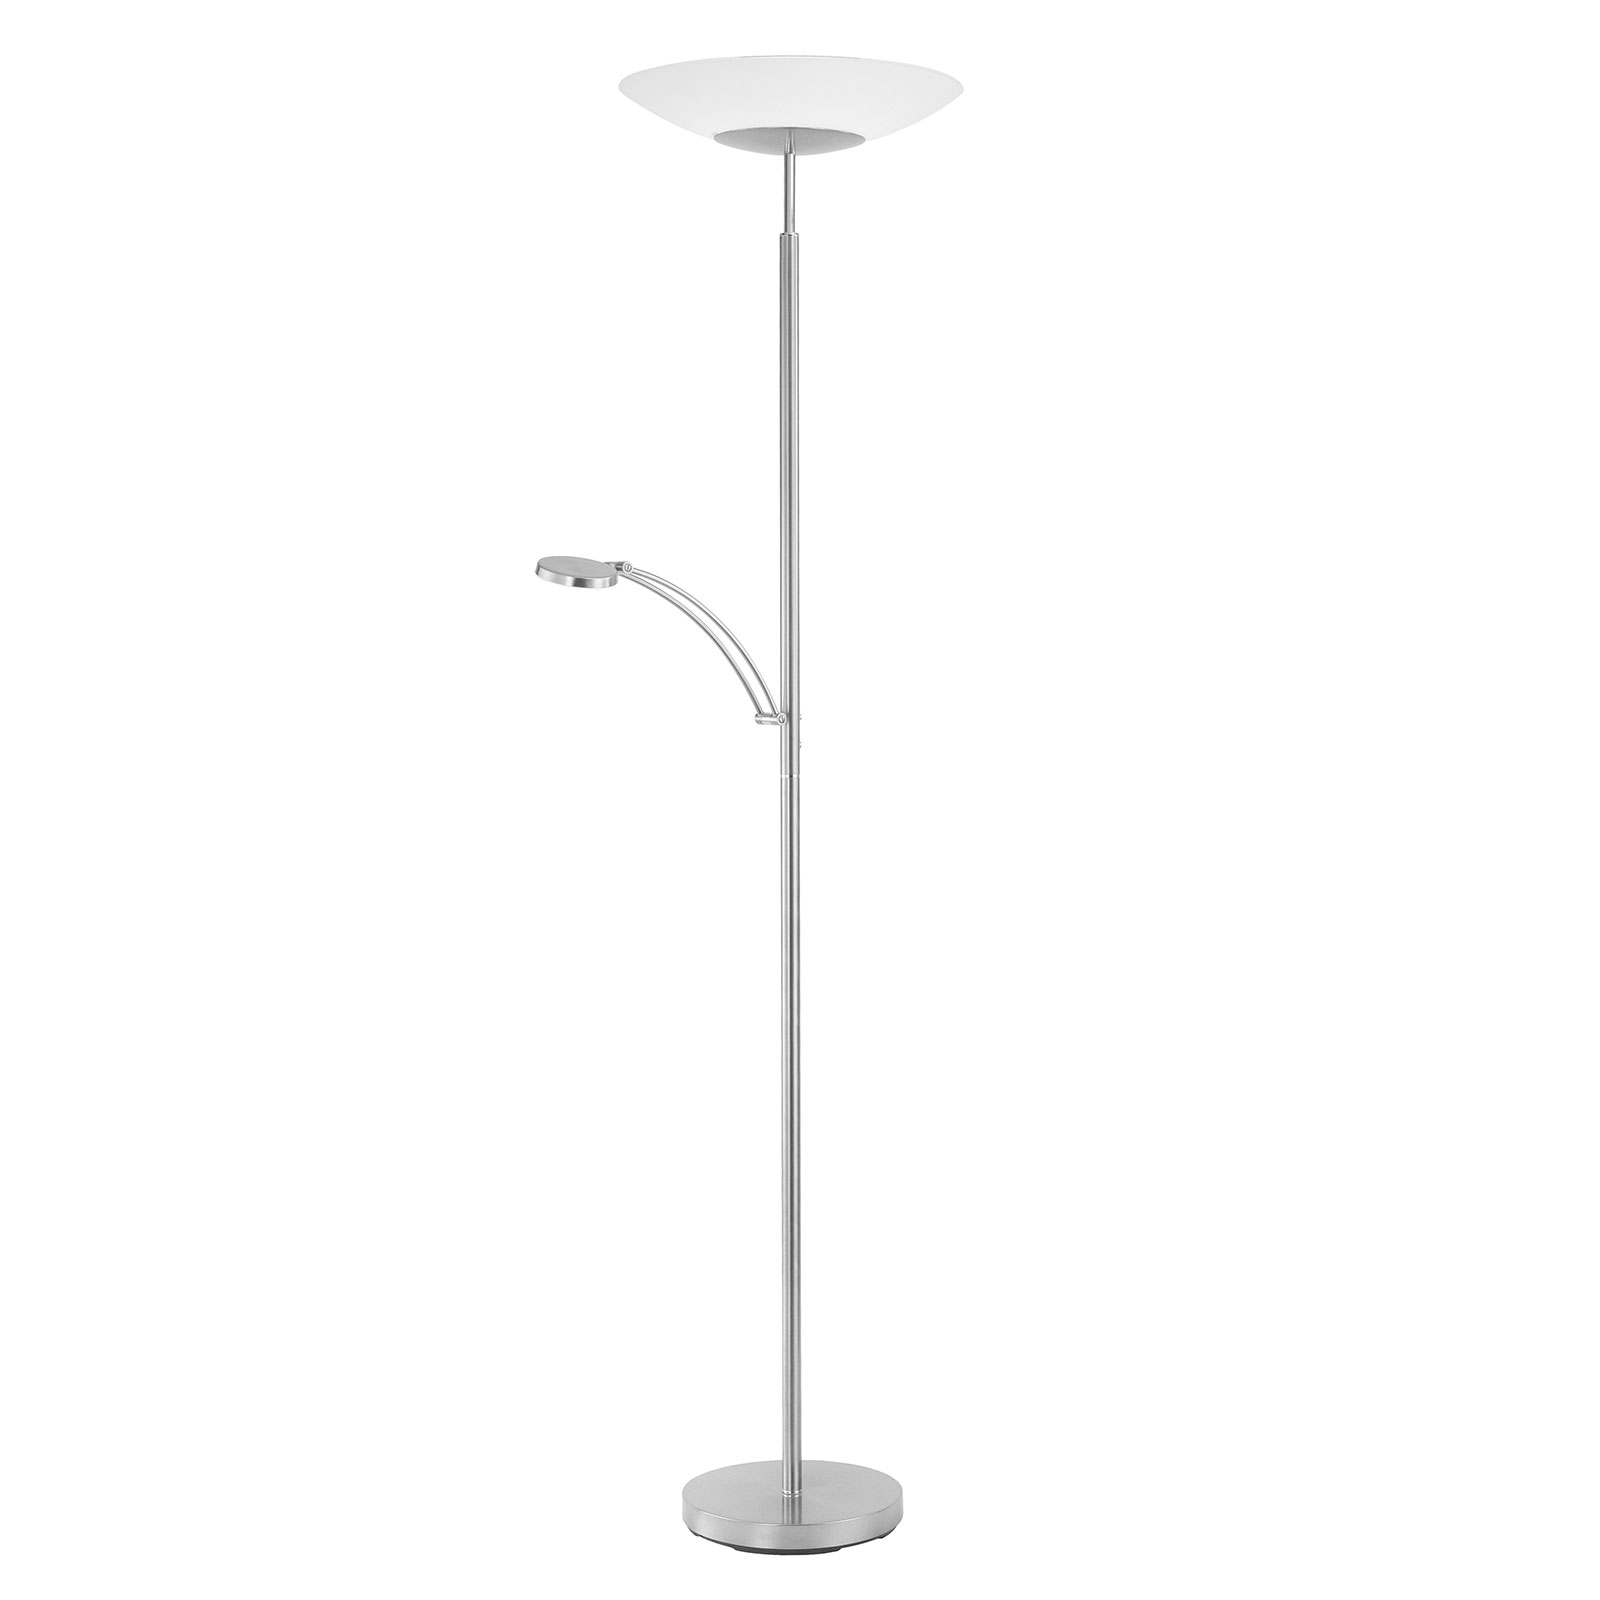 Paul Neuhaus Alfred LED uplighter staal